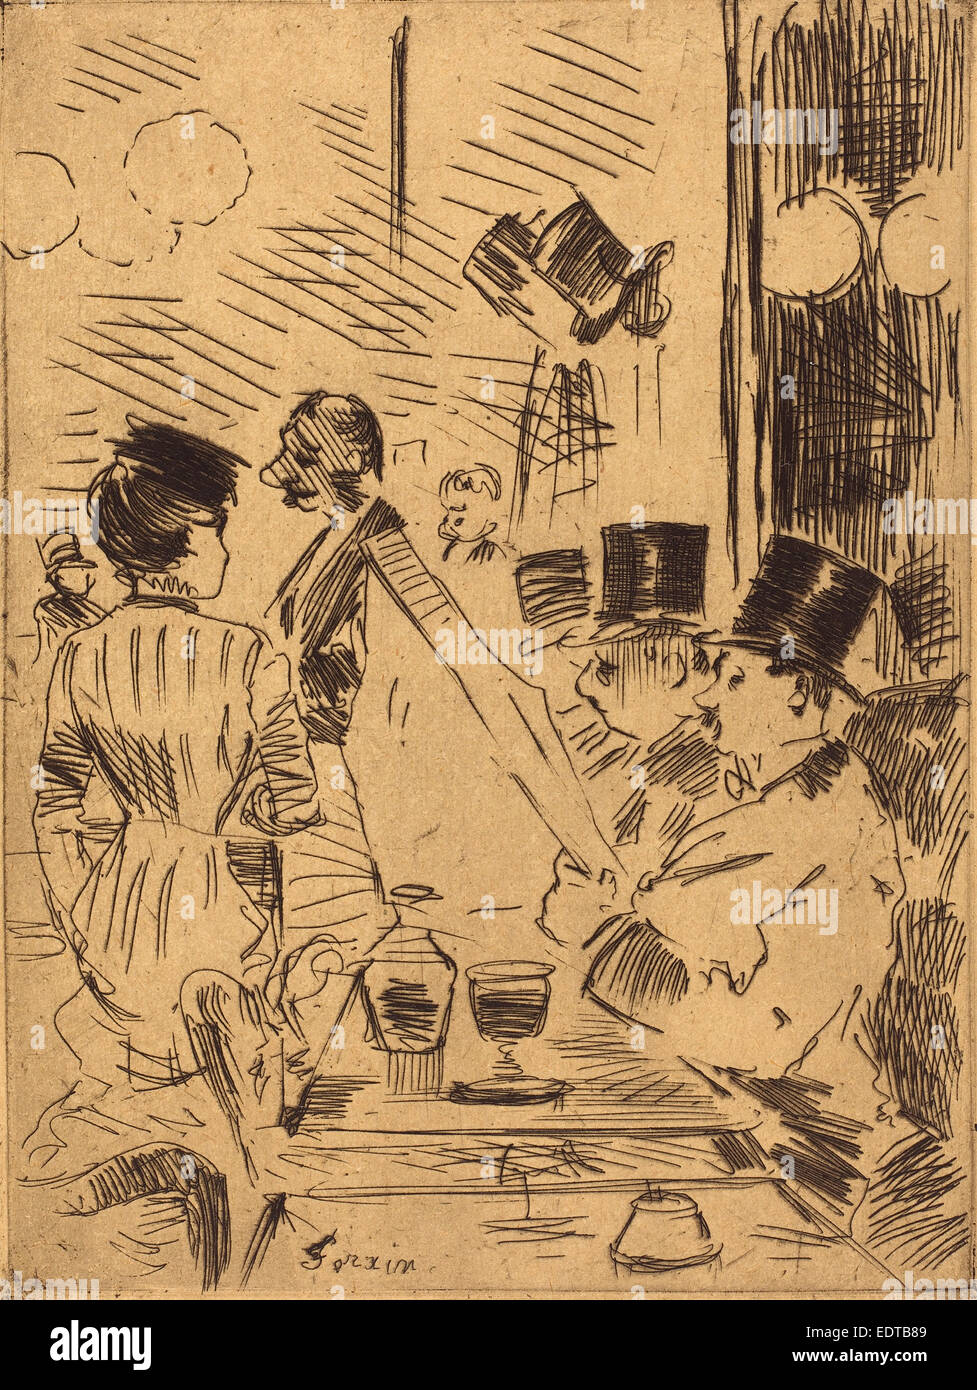 Jean-Louis Forain (French, 1852 - 1931), The Cafe of the New Athens, c. 1876, etching - Stock Image